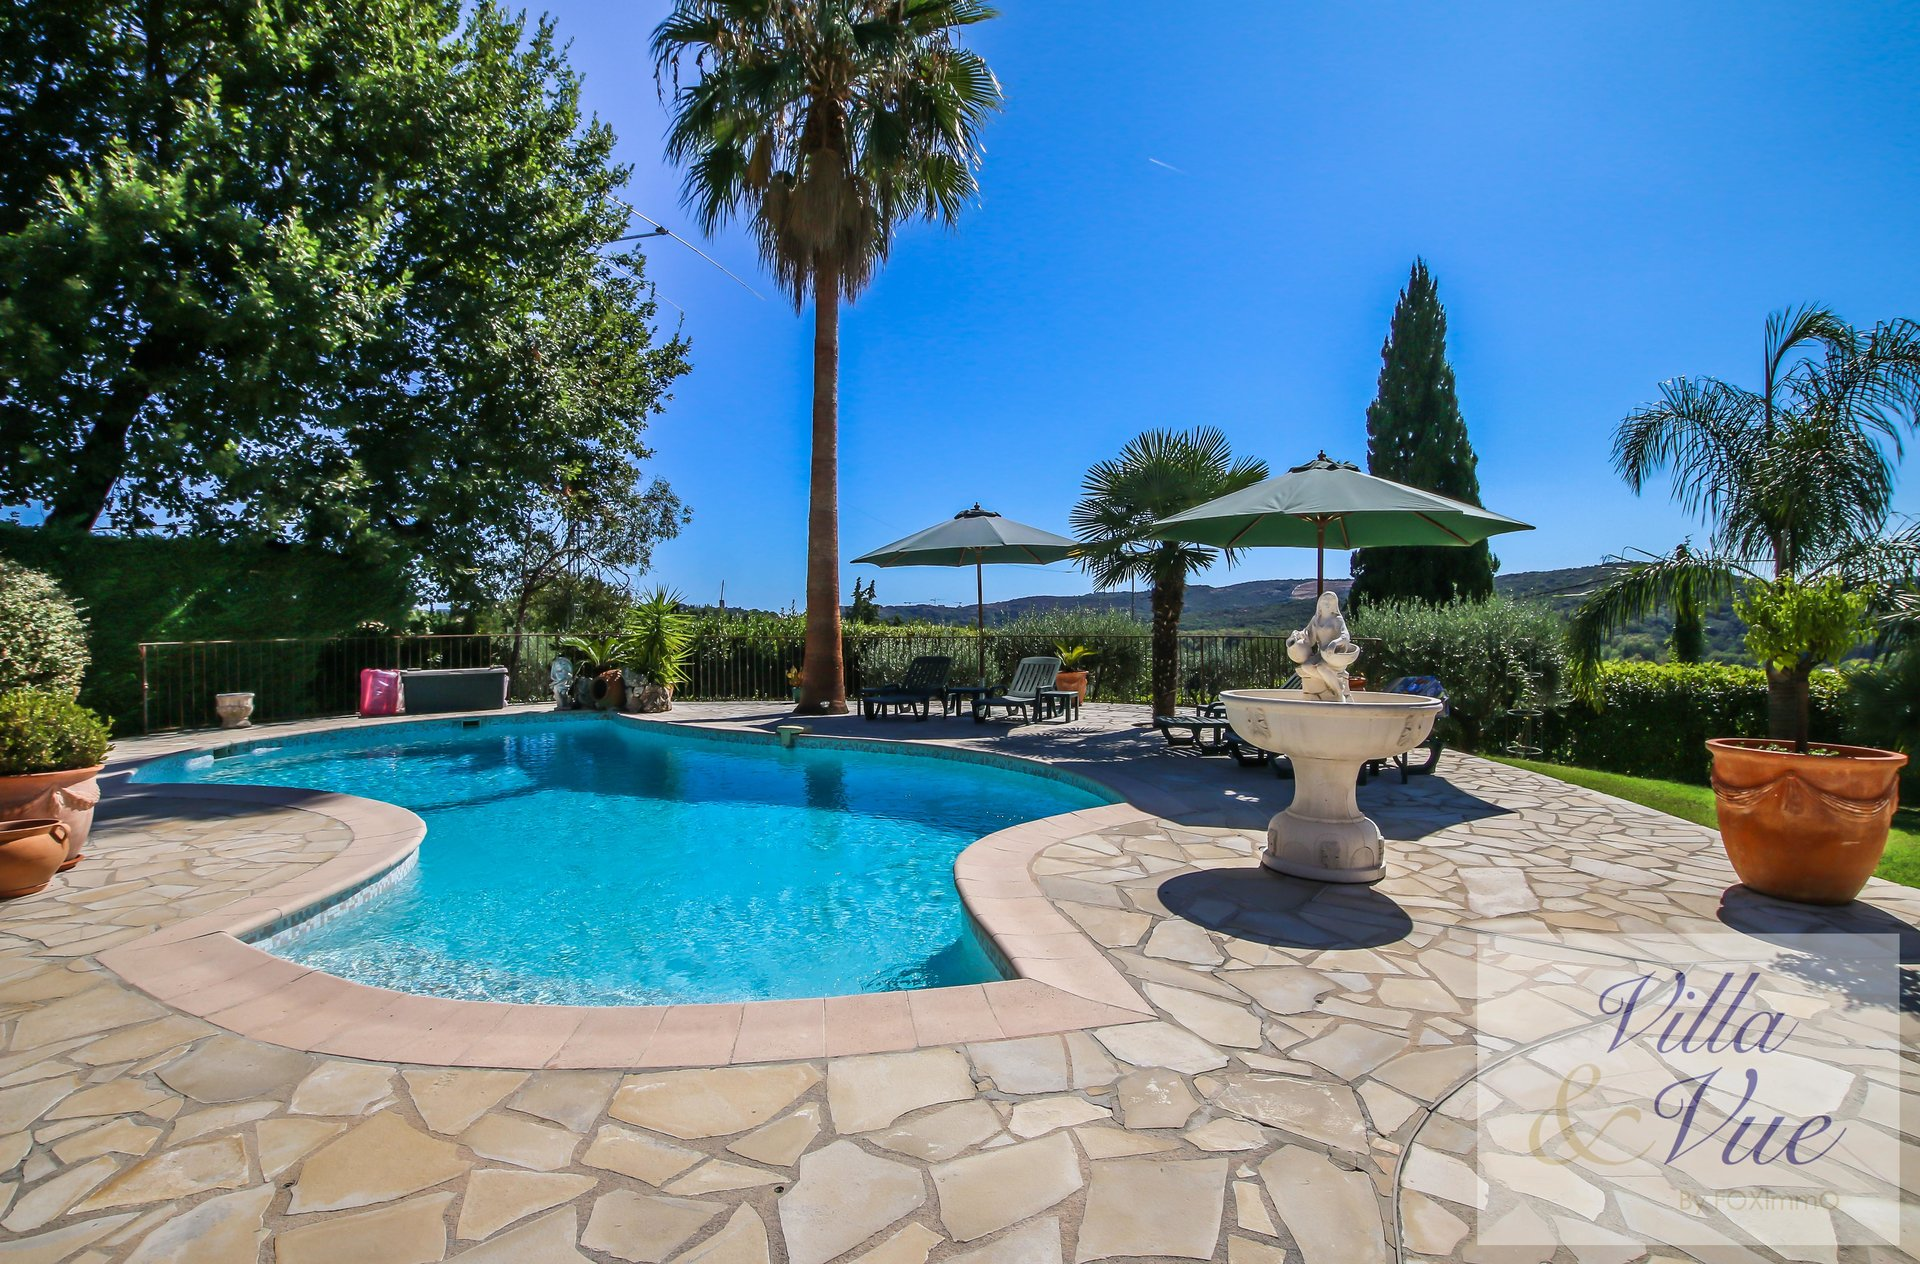 Mas provencal to sell, quiet area, swimming pool